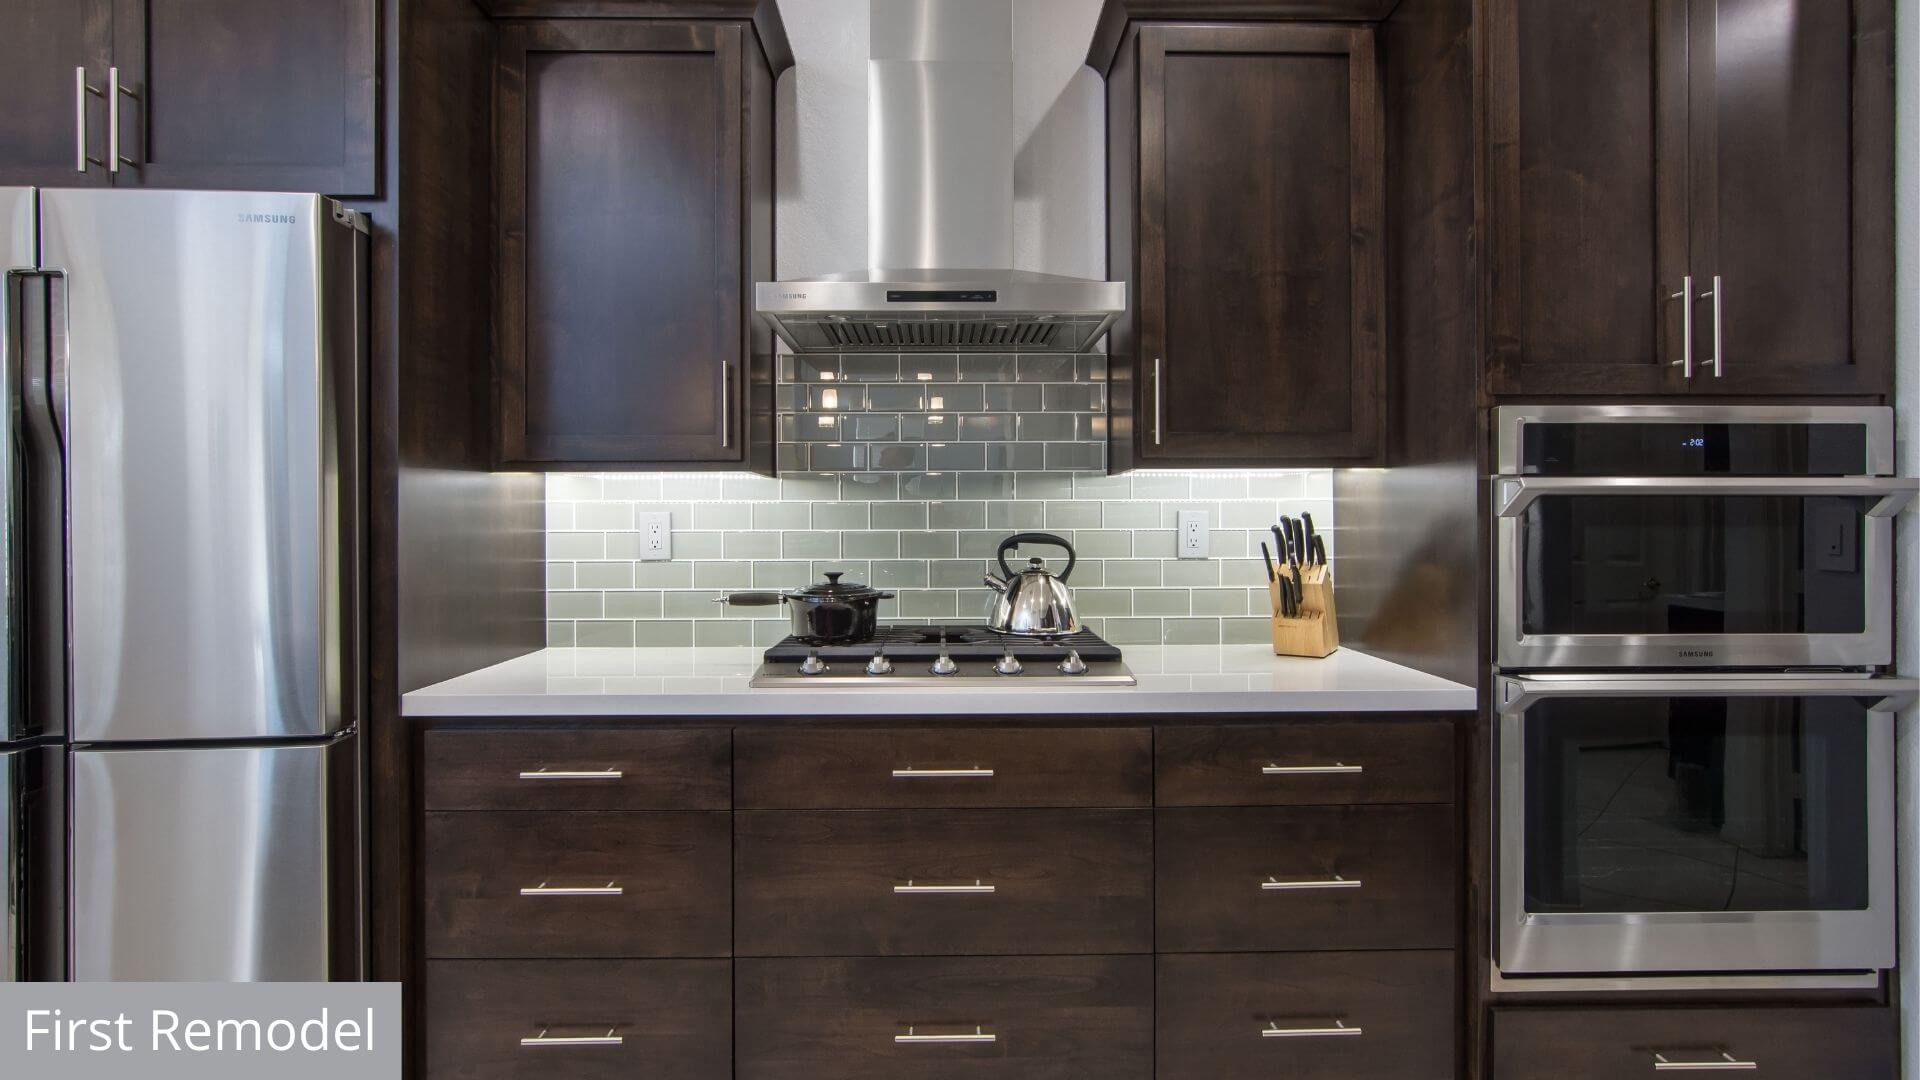 Lenton_Company_First_Remodel_2